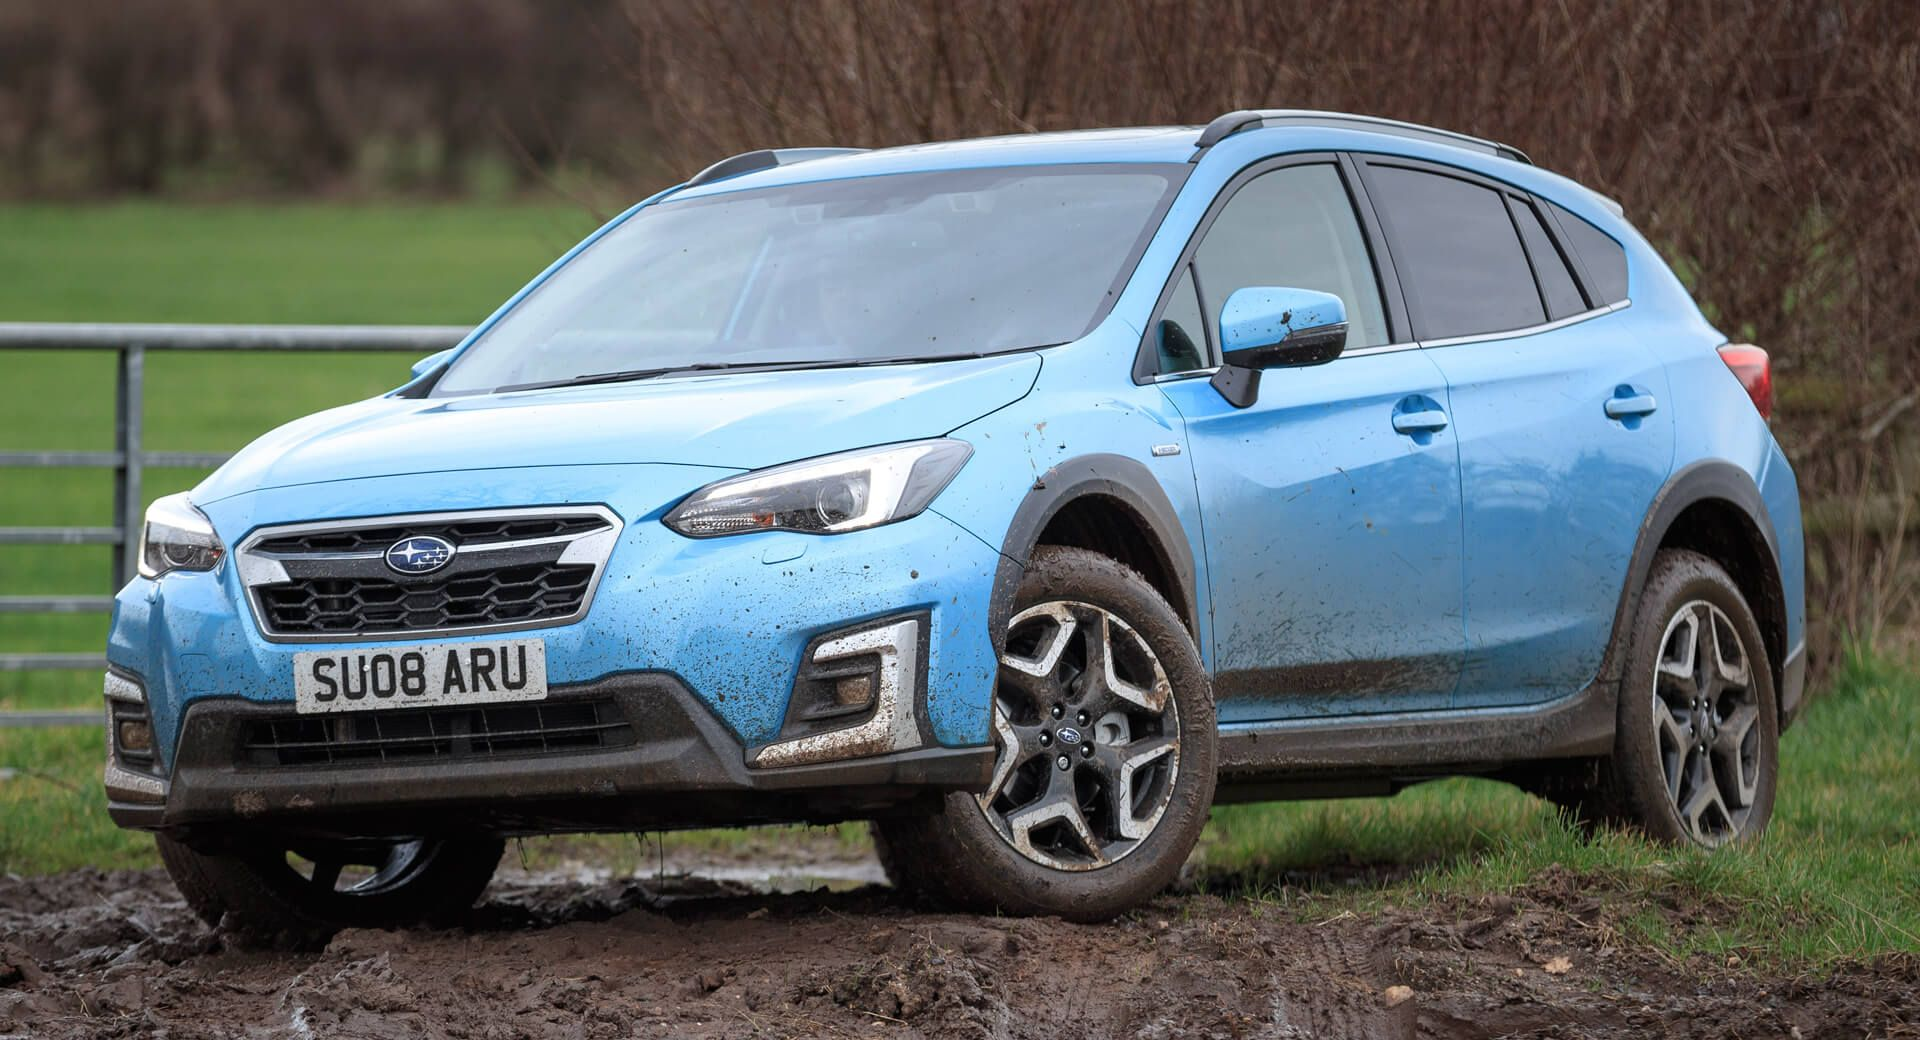 2020 Subaru Xv E Boxer Hybrid Goes On Sale In Britain From 30 995 Hybrids Newcars Prices Subaru Subarucrosstrek Subarux In 2020 Subaru New Cars Subaru Crosstrek